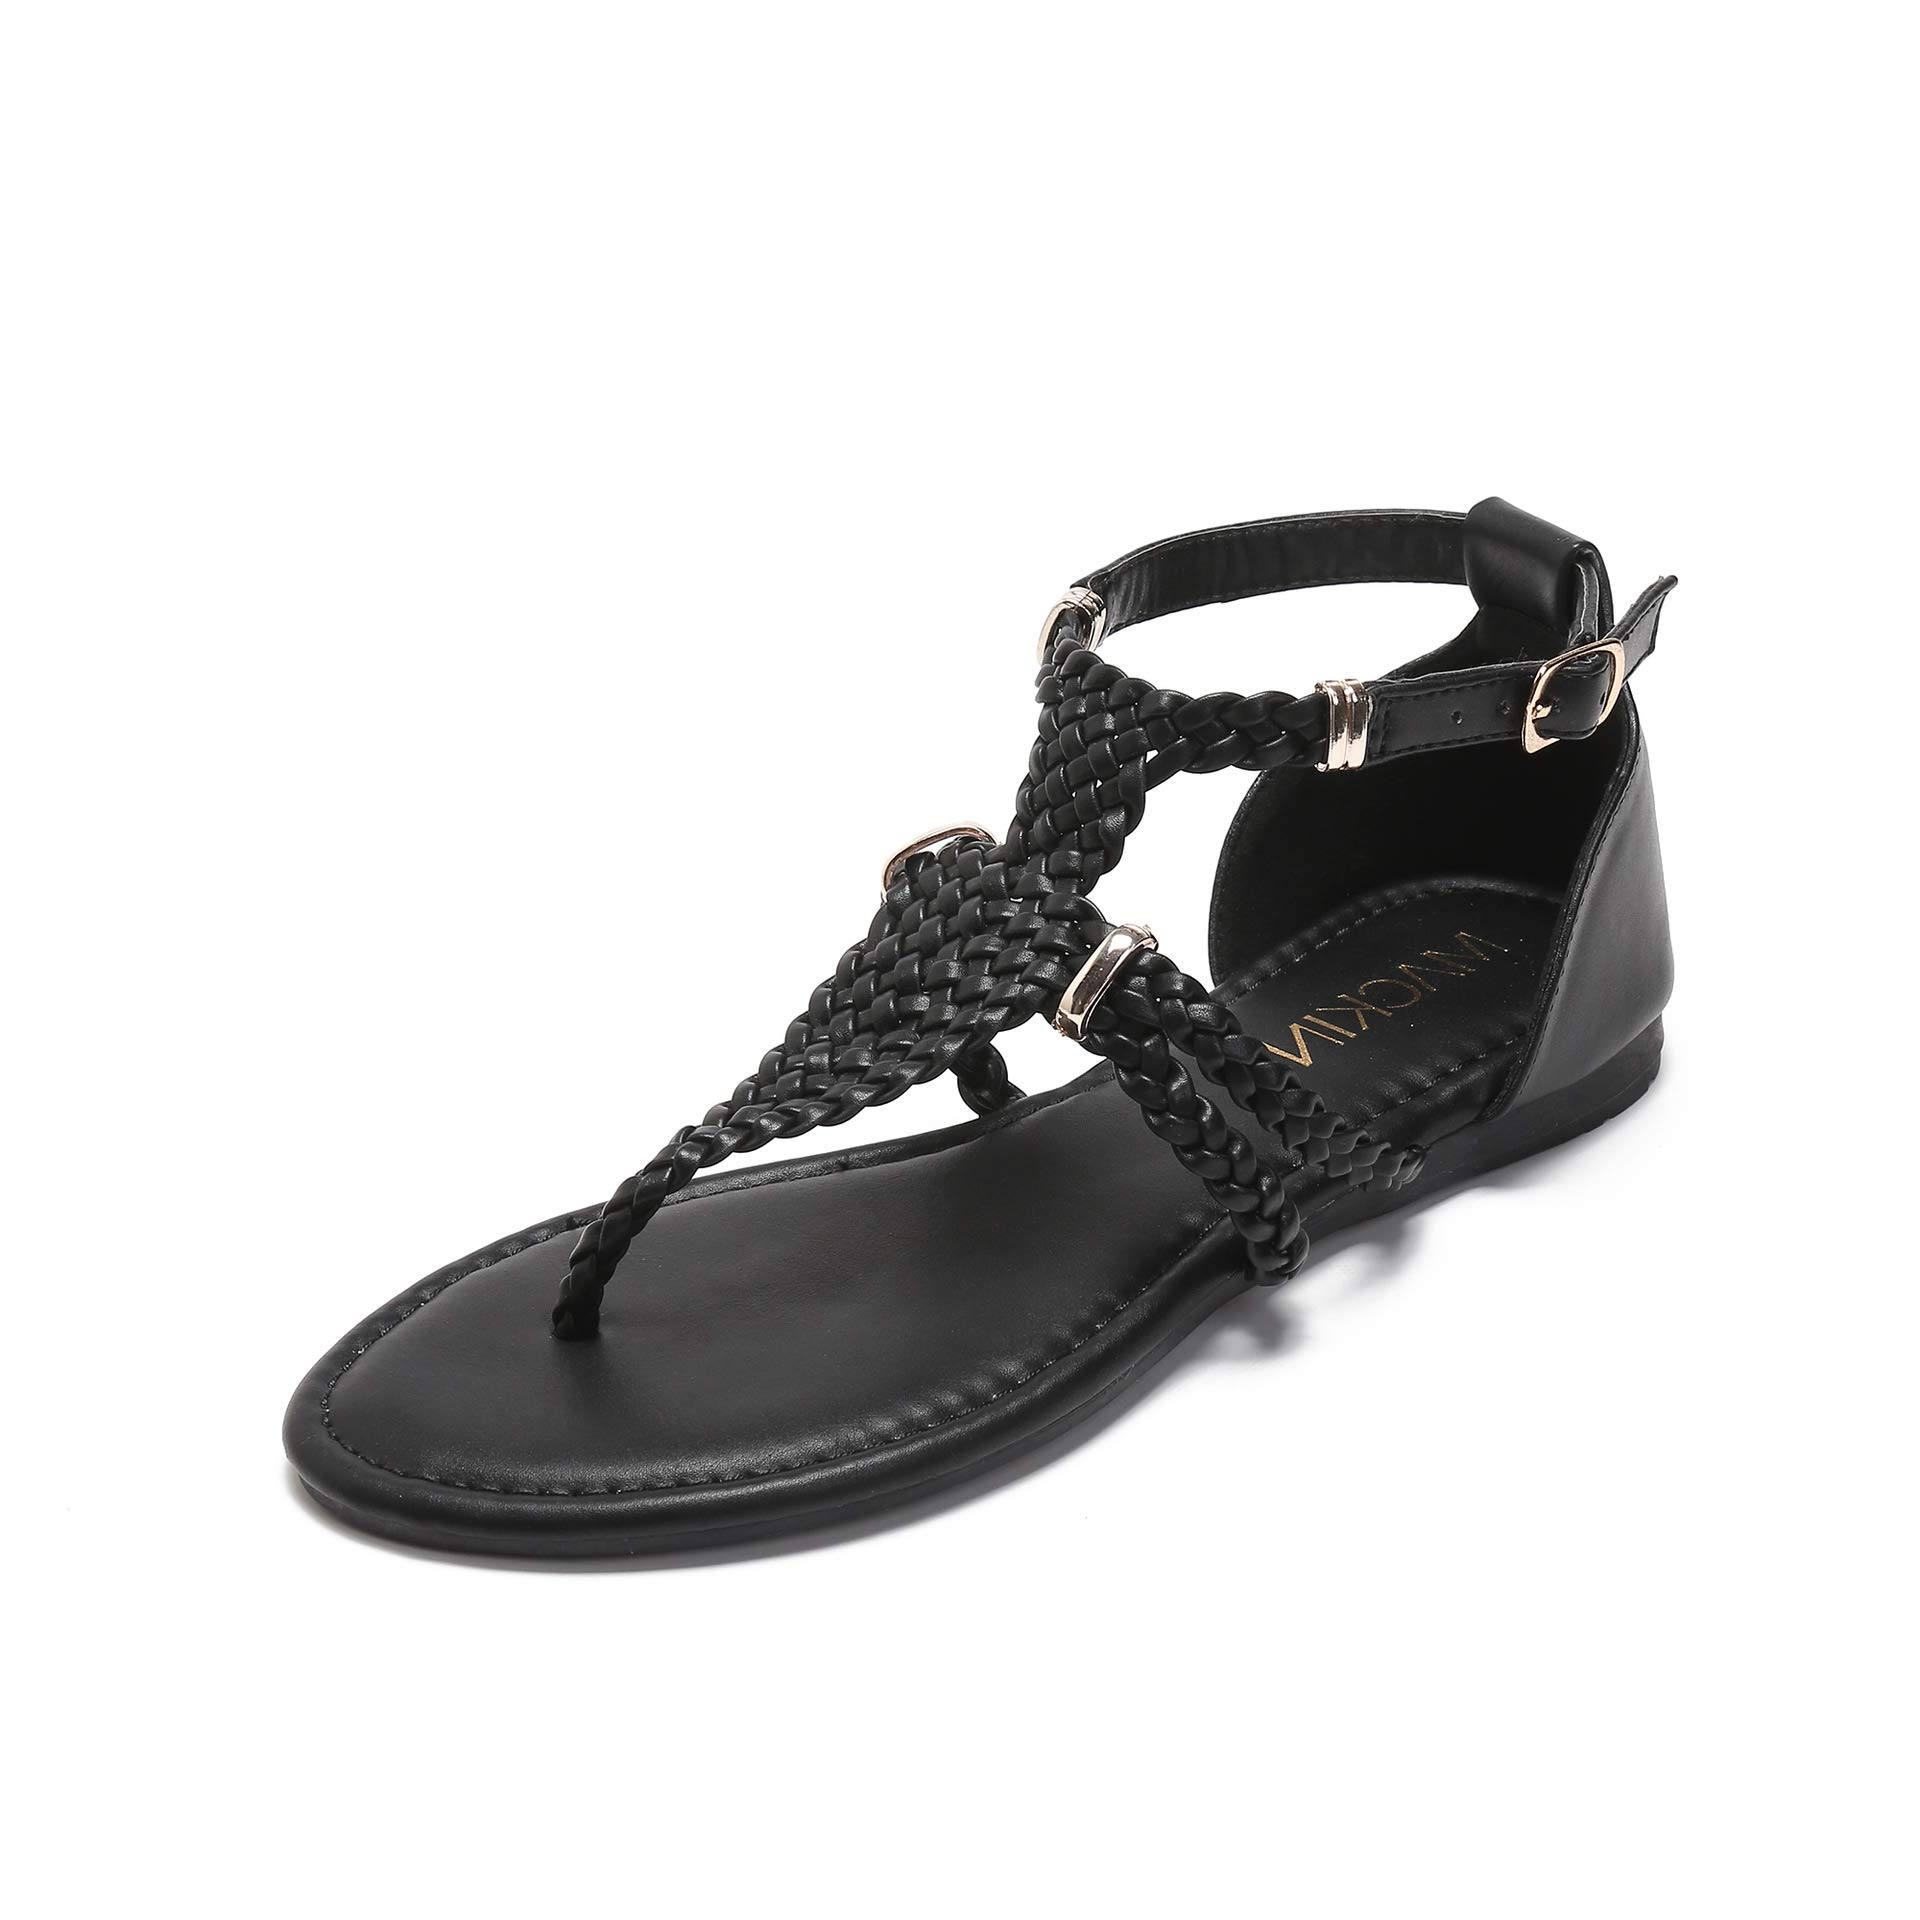 MACKIN J 391-1 Women's Gladiator Sandals Thong Braided Ankle Strap Flat Sandals